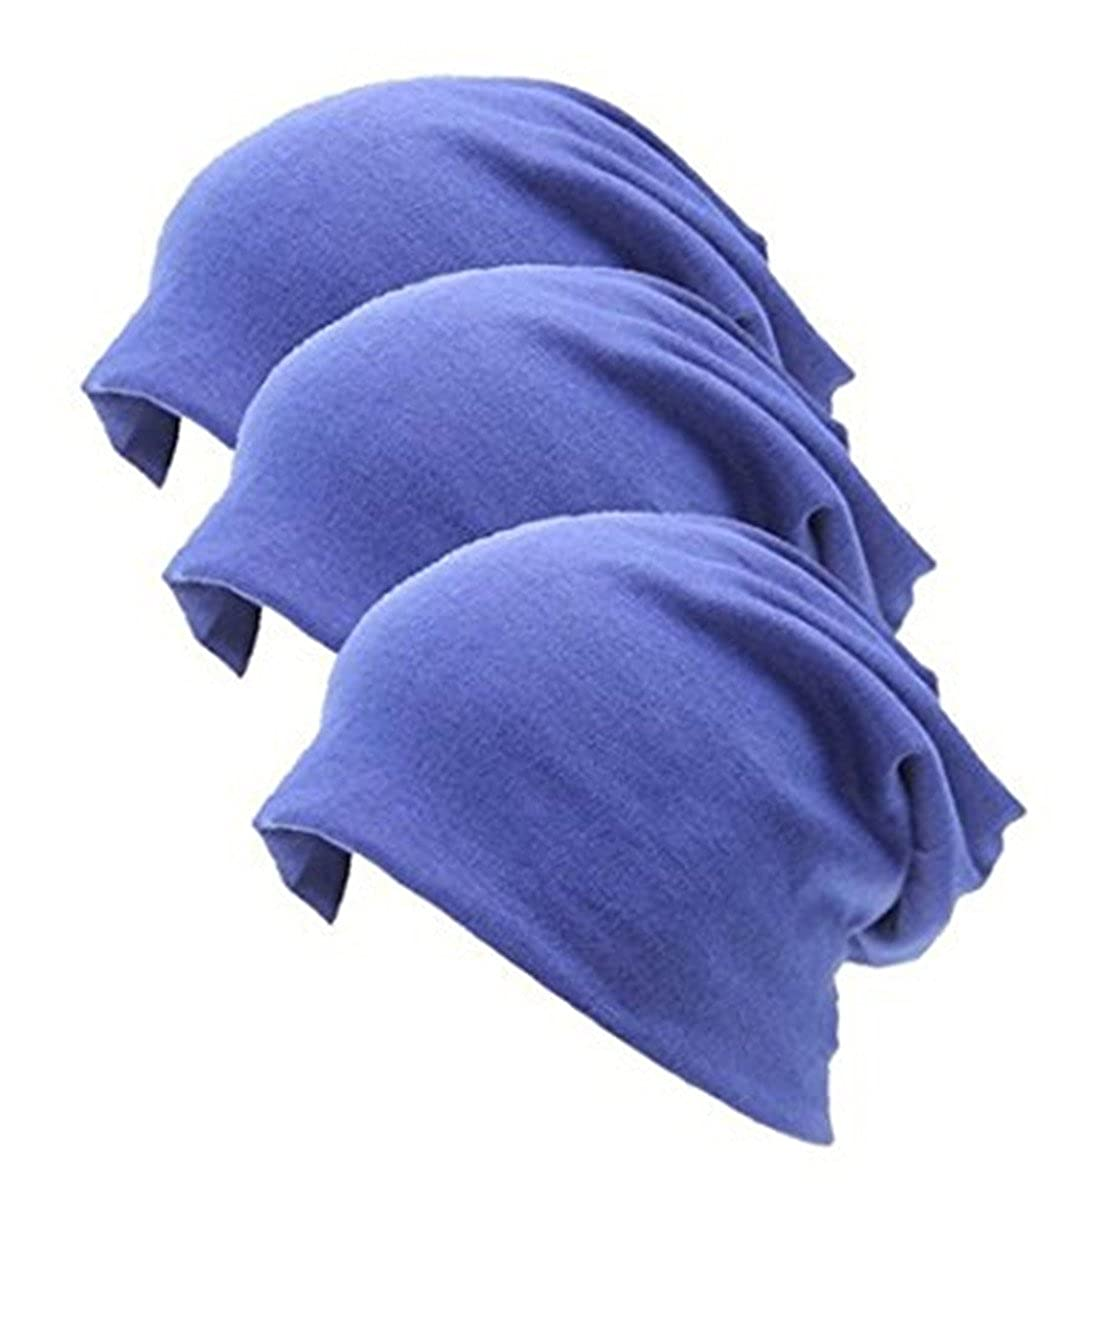 Lydreewam Fashion 3 Pack Unisex Soft Comfy Cotton Beanie Schlaf und Chemo Cap Hüte für Hairloss, Krebs gthcankl-22